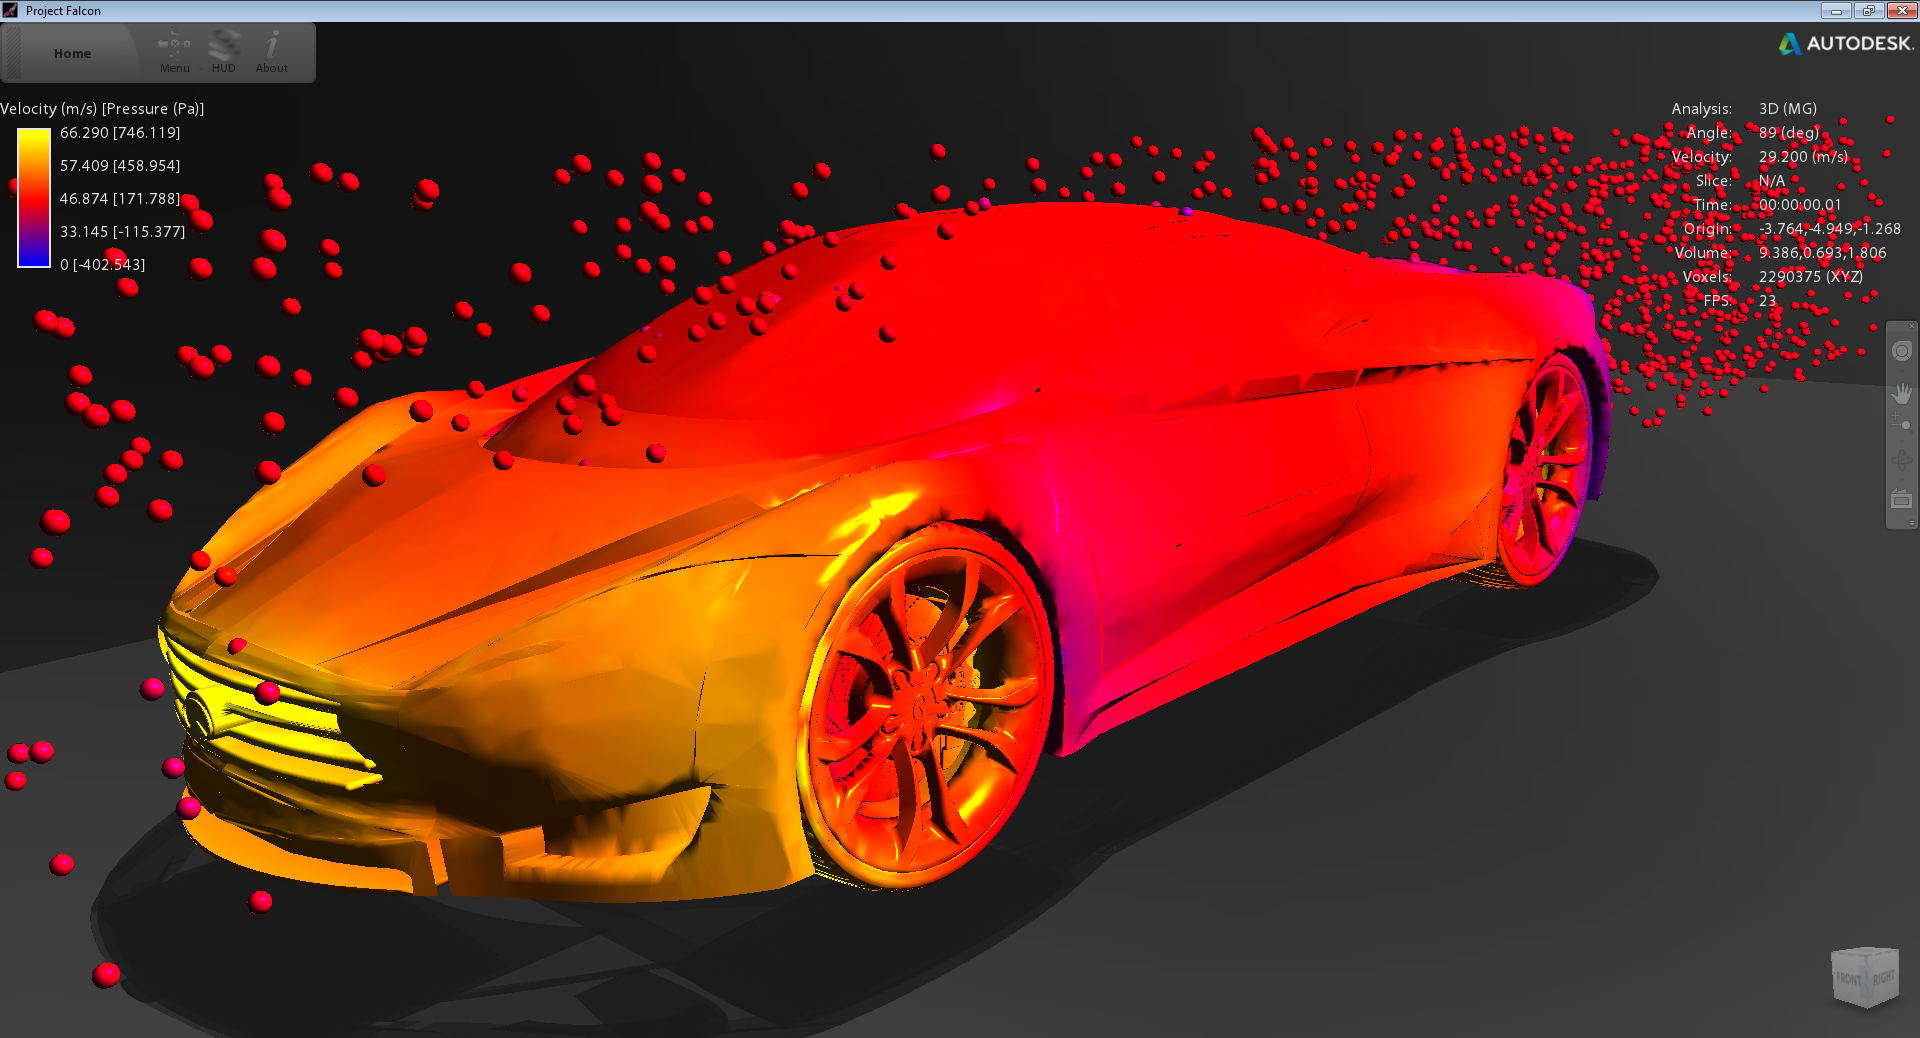 Autodesk Gallery: Real-time 3D Capture and Analysis Exhibit